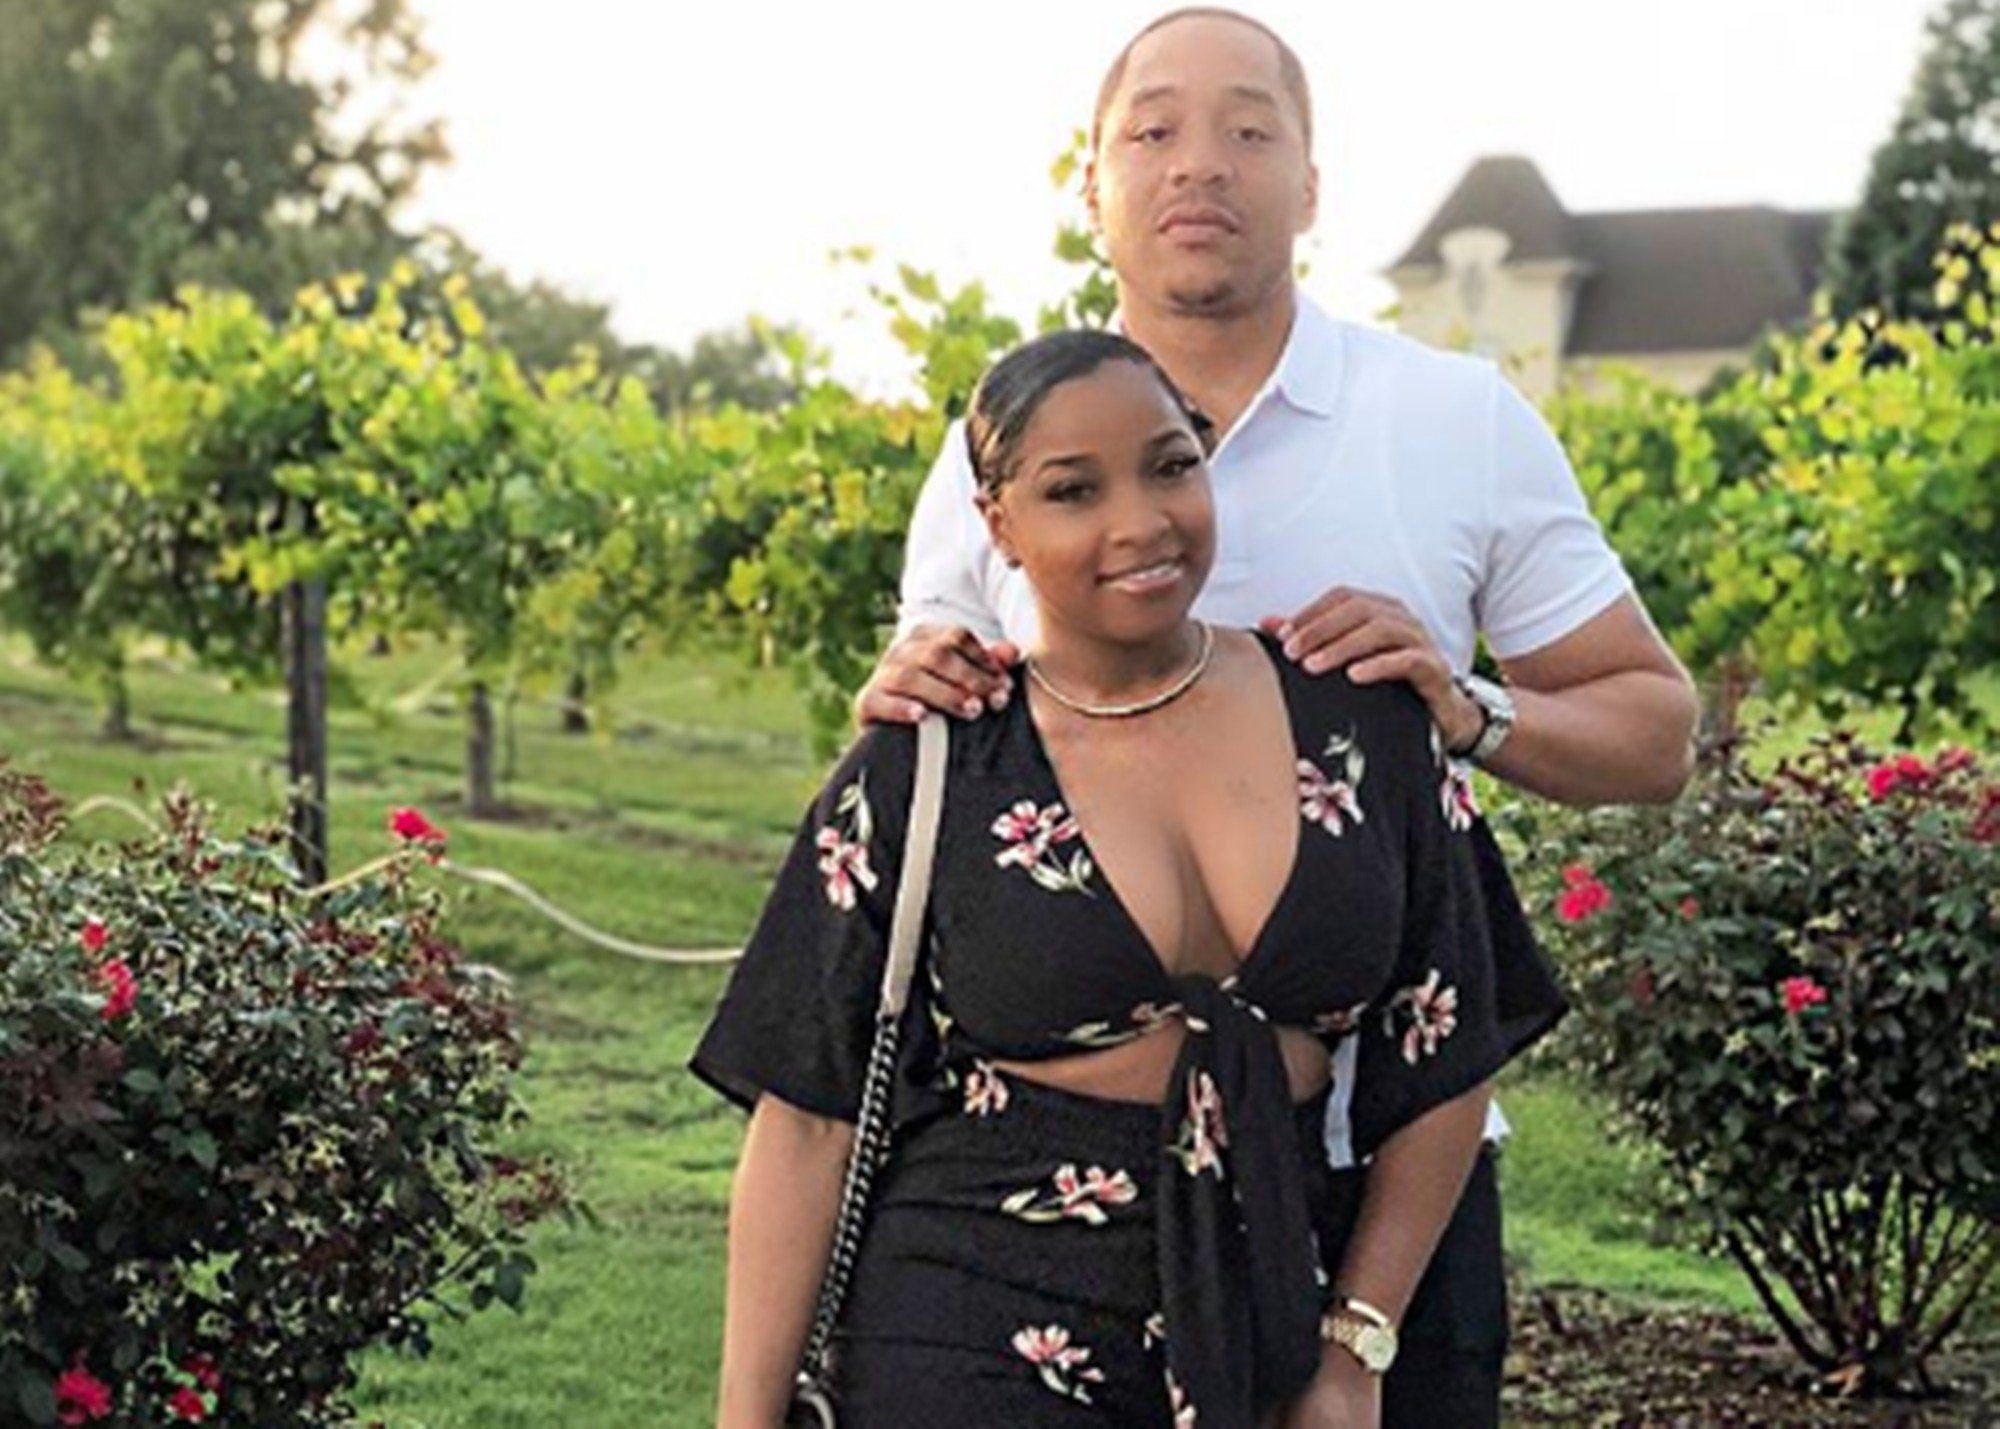 Toya Johnson Is Slaying This Really Youthful Outfit - Check Out The Photo Here